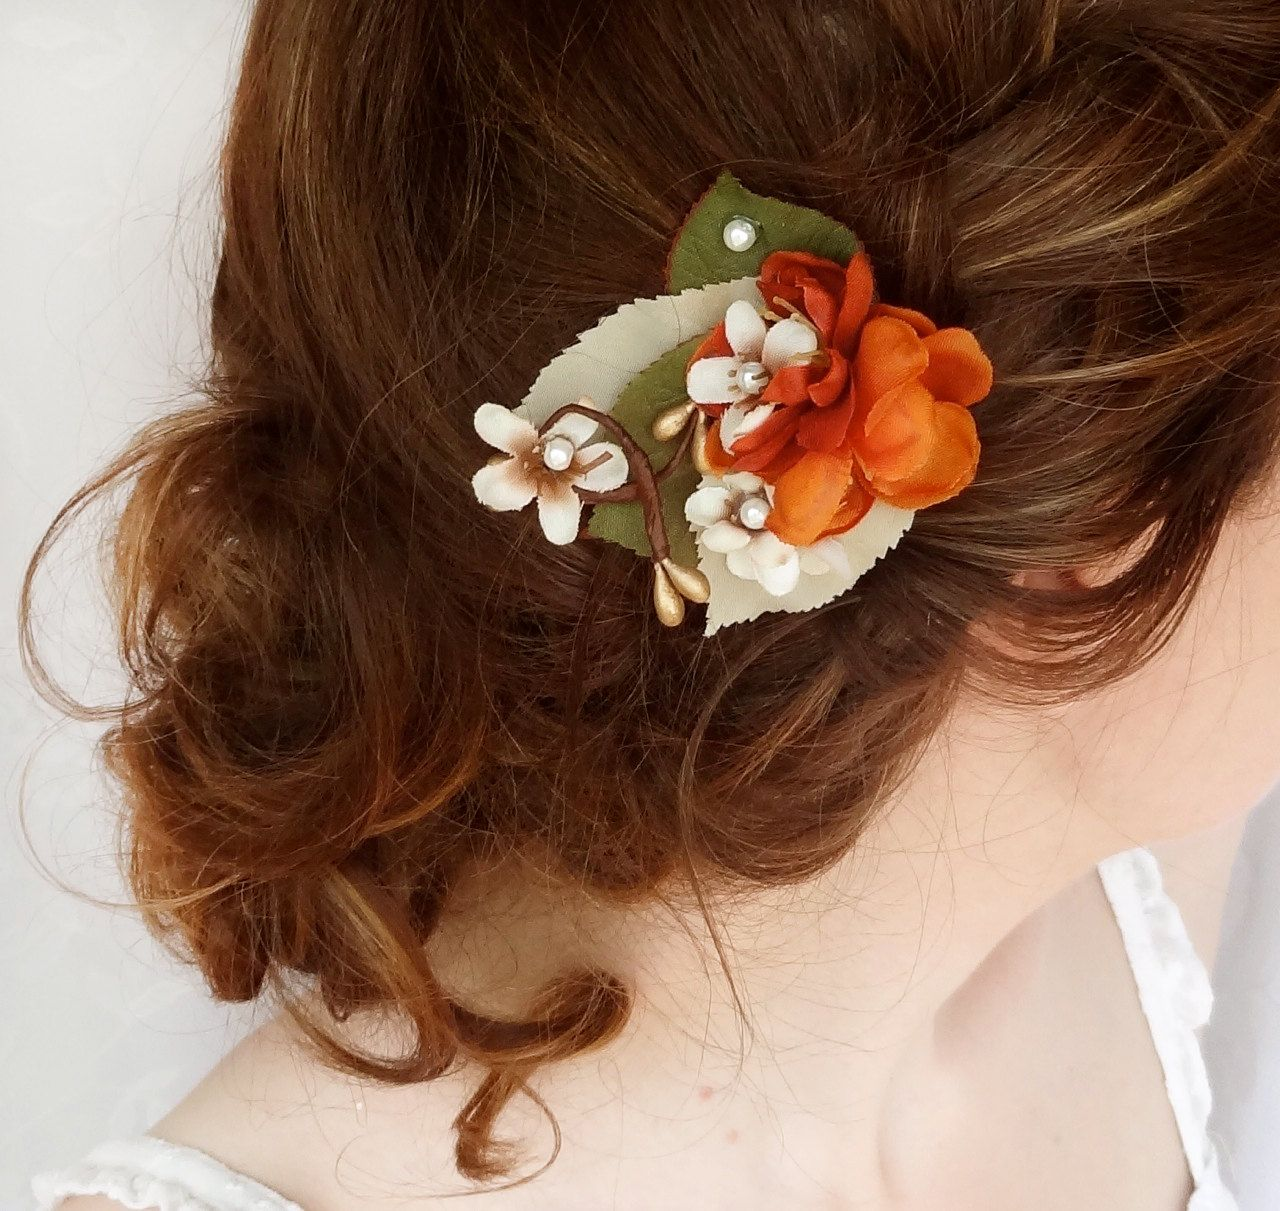 hair pieces for wedding fall hair accessories burnt orange flower hair clip bridal hair accessory LEAFLET rustic wedding flower girl